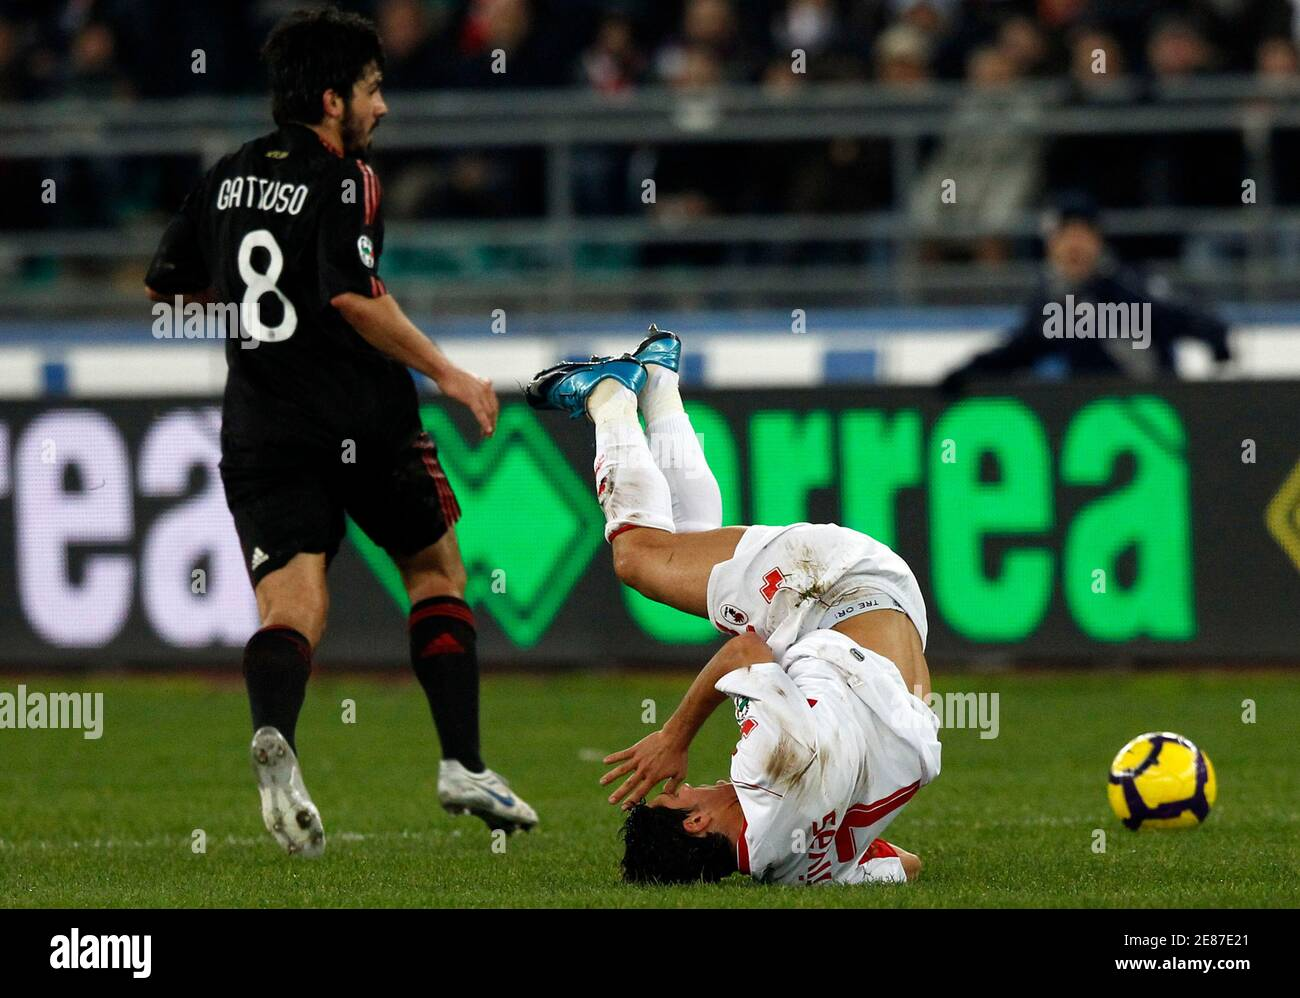 Bari's Emanuel Benito Rivas (R) flies down as  Gennaro Gattuso (C) of AC Milan passes near during their Serie A soccer match at the San Nicola stadium in Bari February 21, 2010.  REUTERS/Alessandro Bianchi   (ITALY - Tags: SPORT SOCCER) Banque D'Images